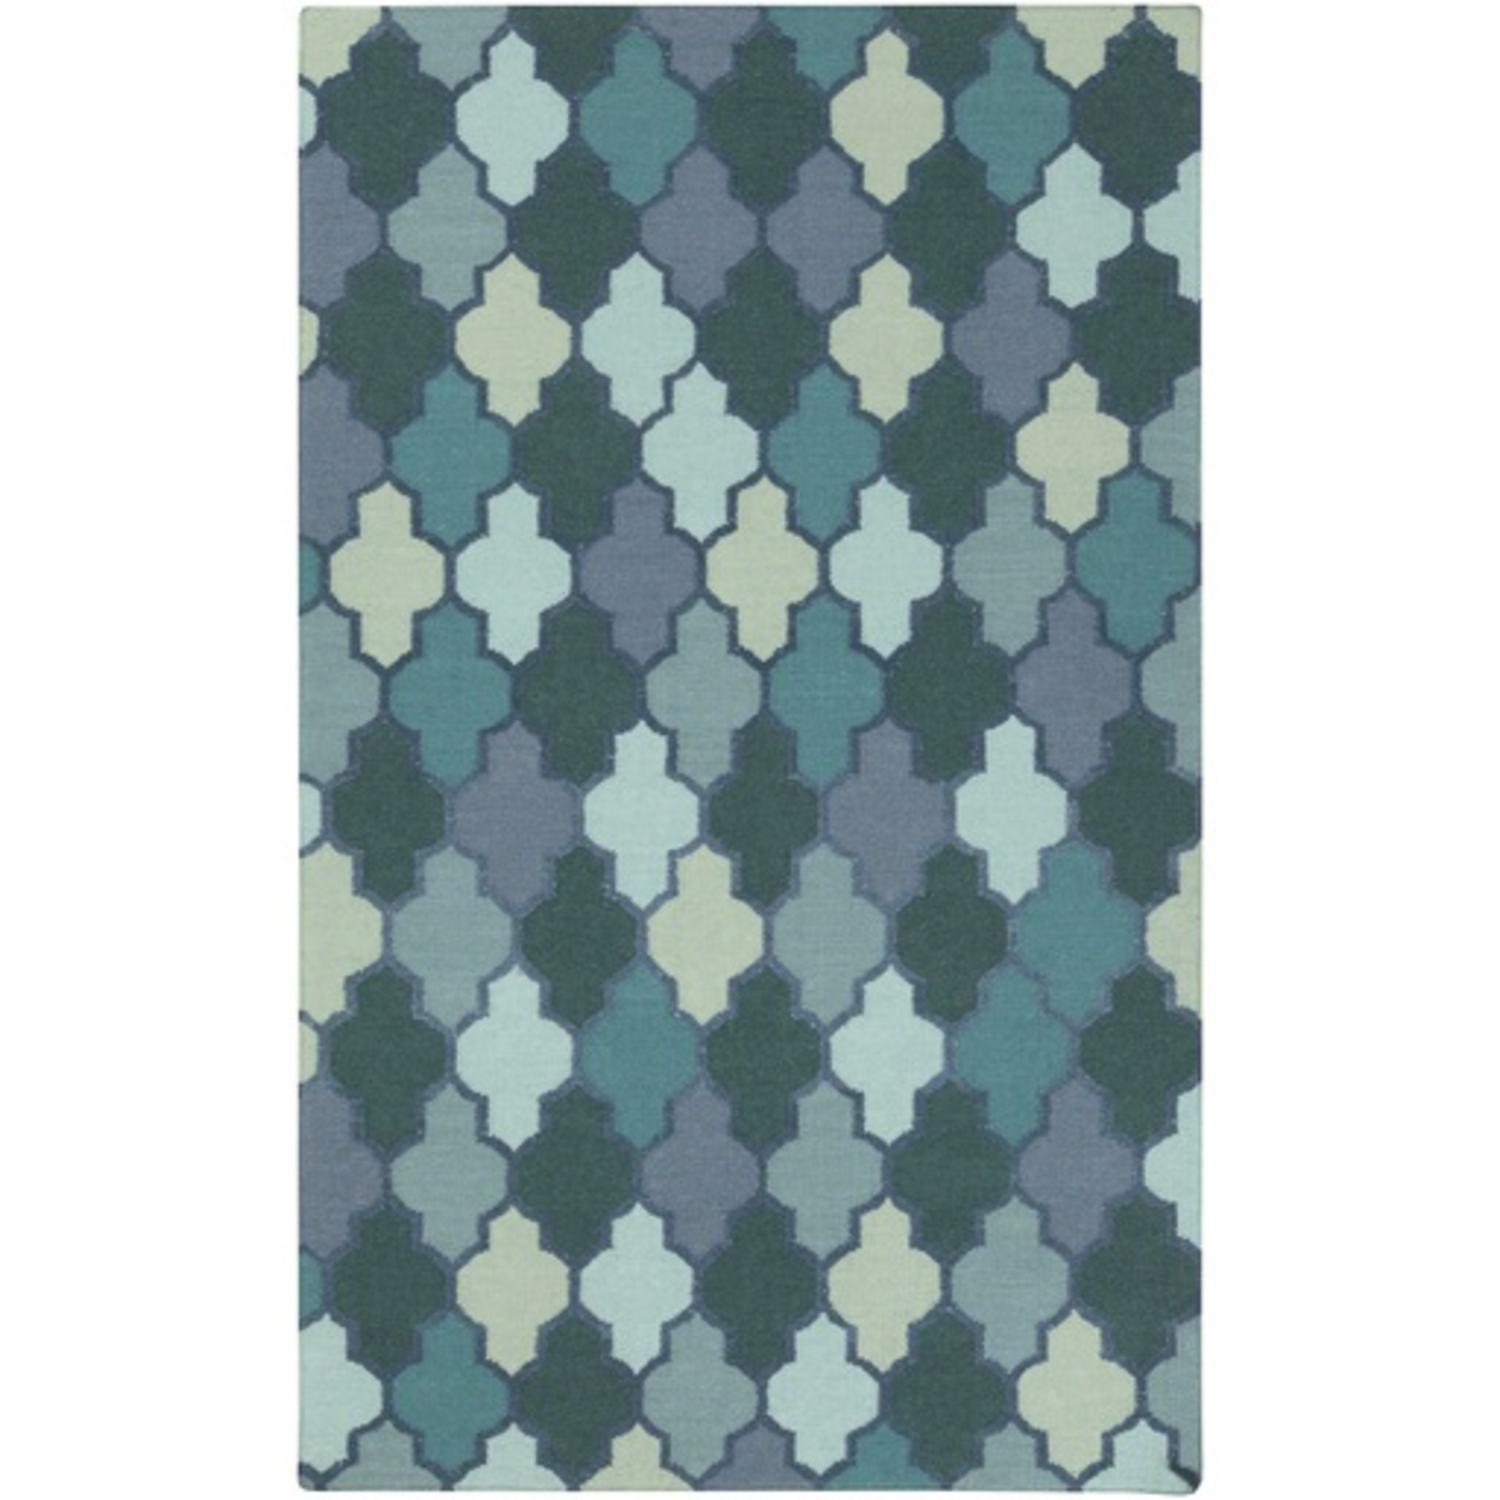 2' x 3' Moroccan Meditation Teal Blue and Turquoise Green Hand Woven Area Throw Rug